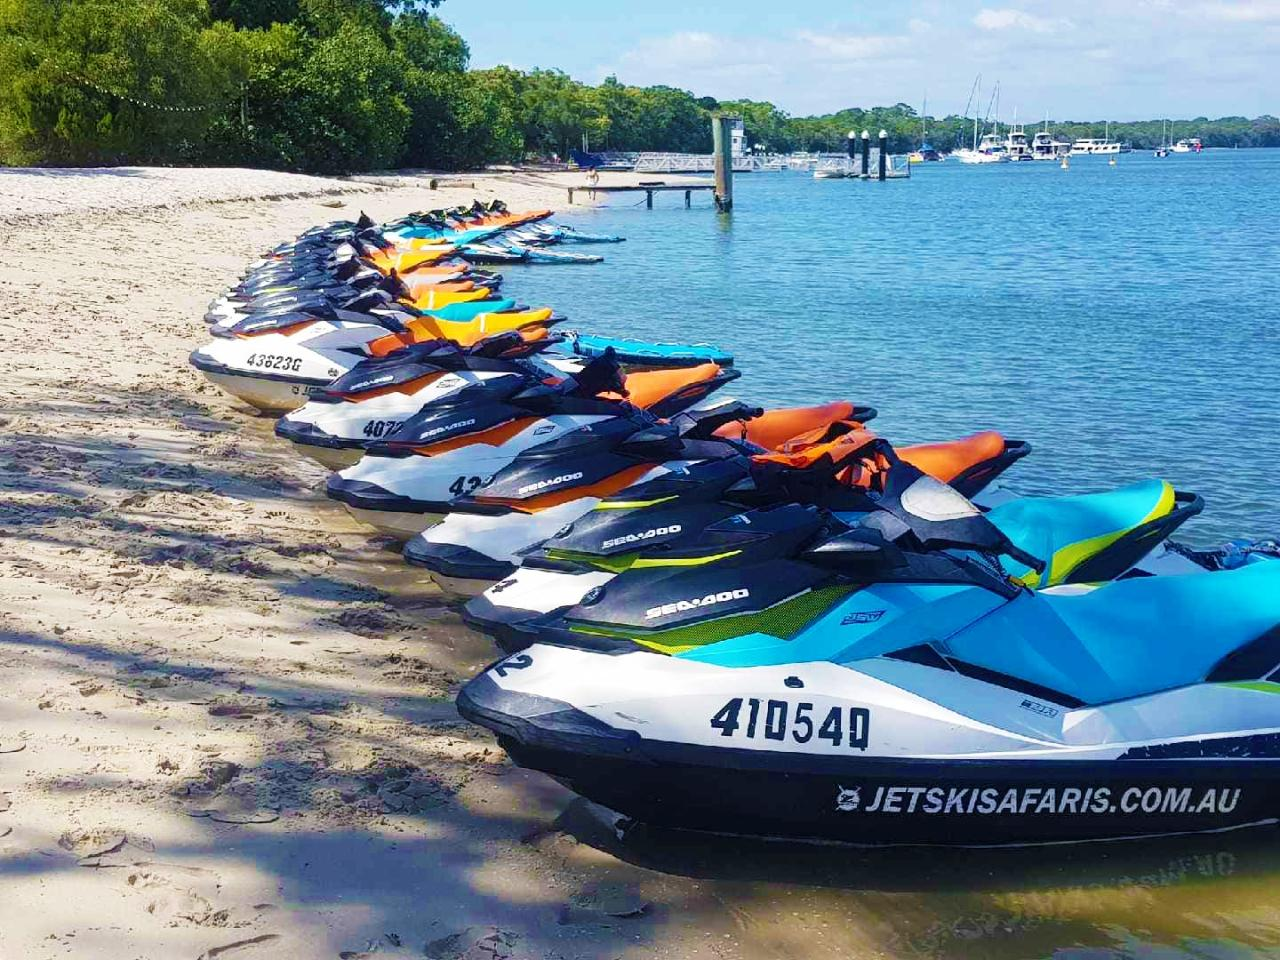 Parasailing plus 1 hour Jet Ski Safari - 2 Adults